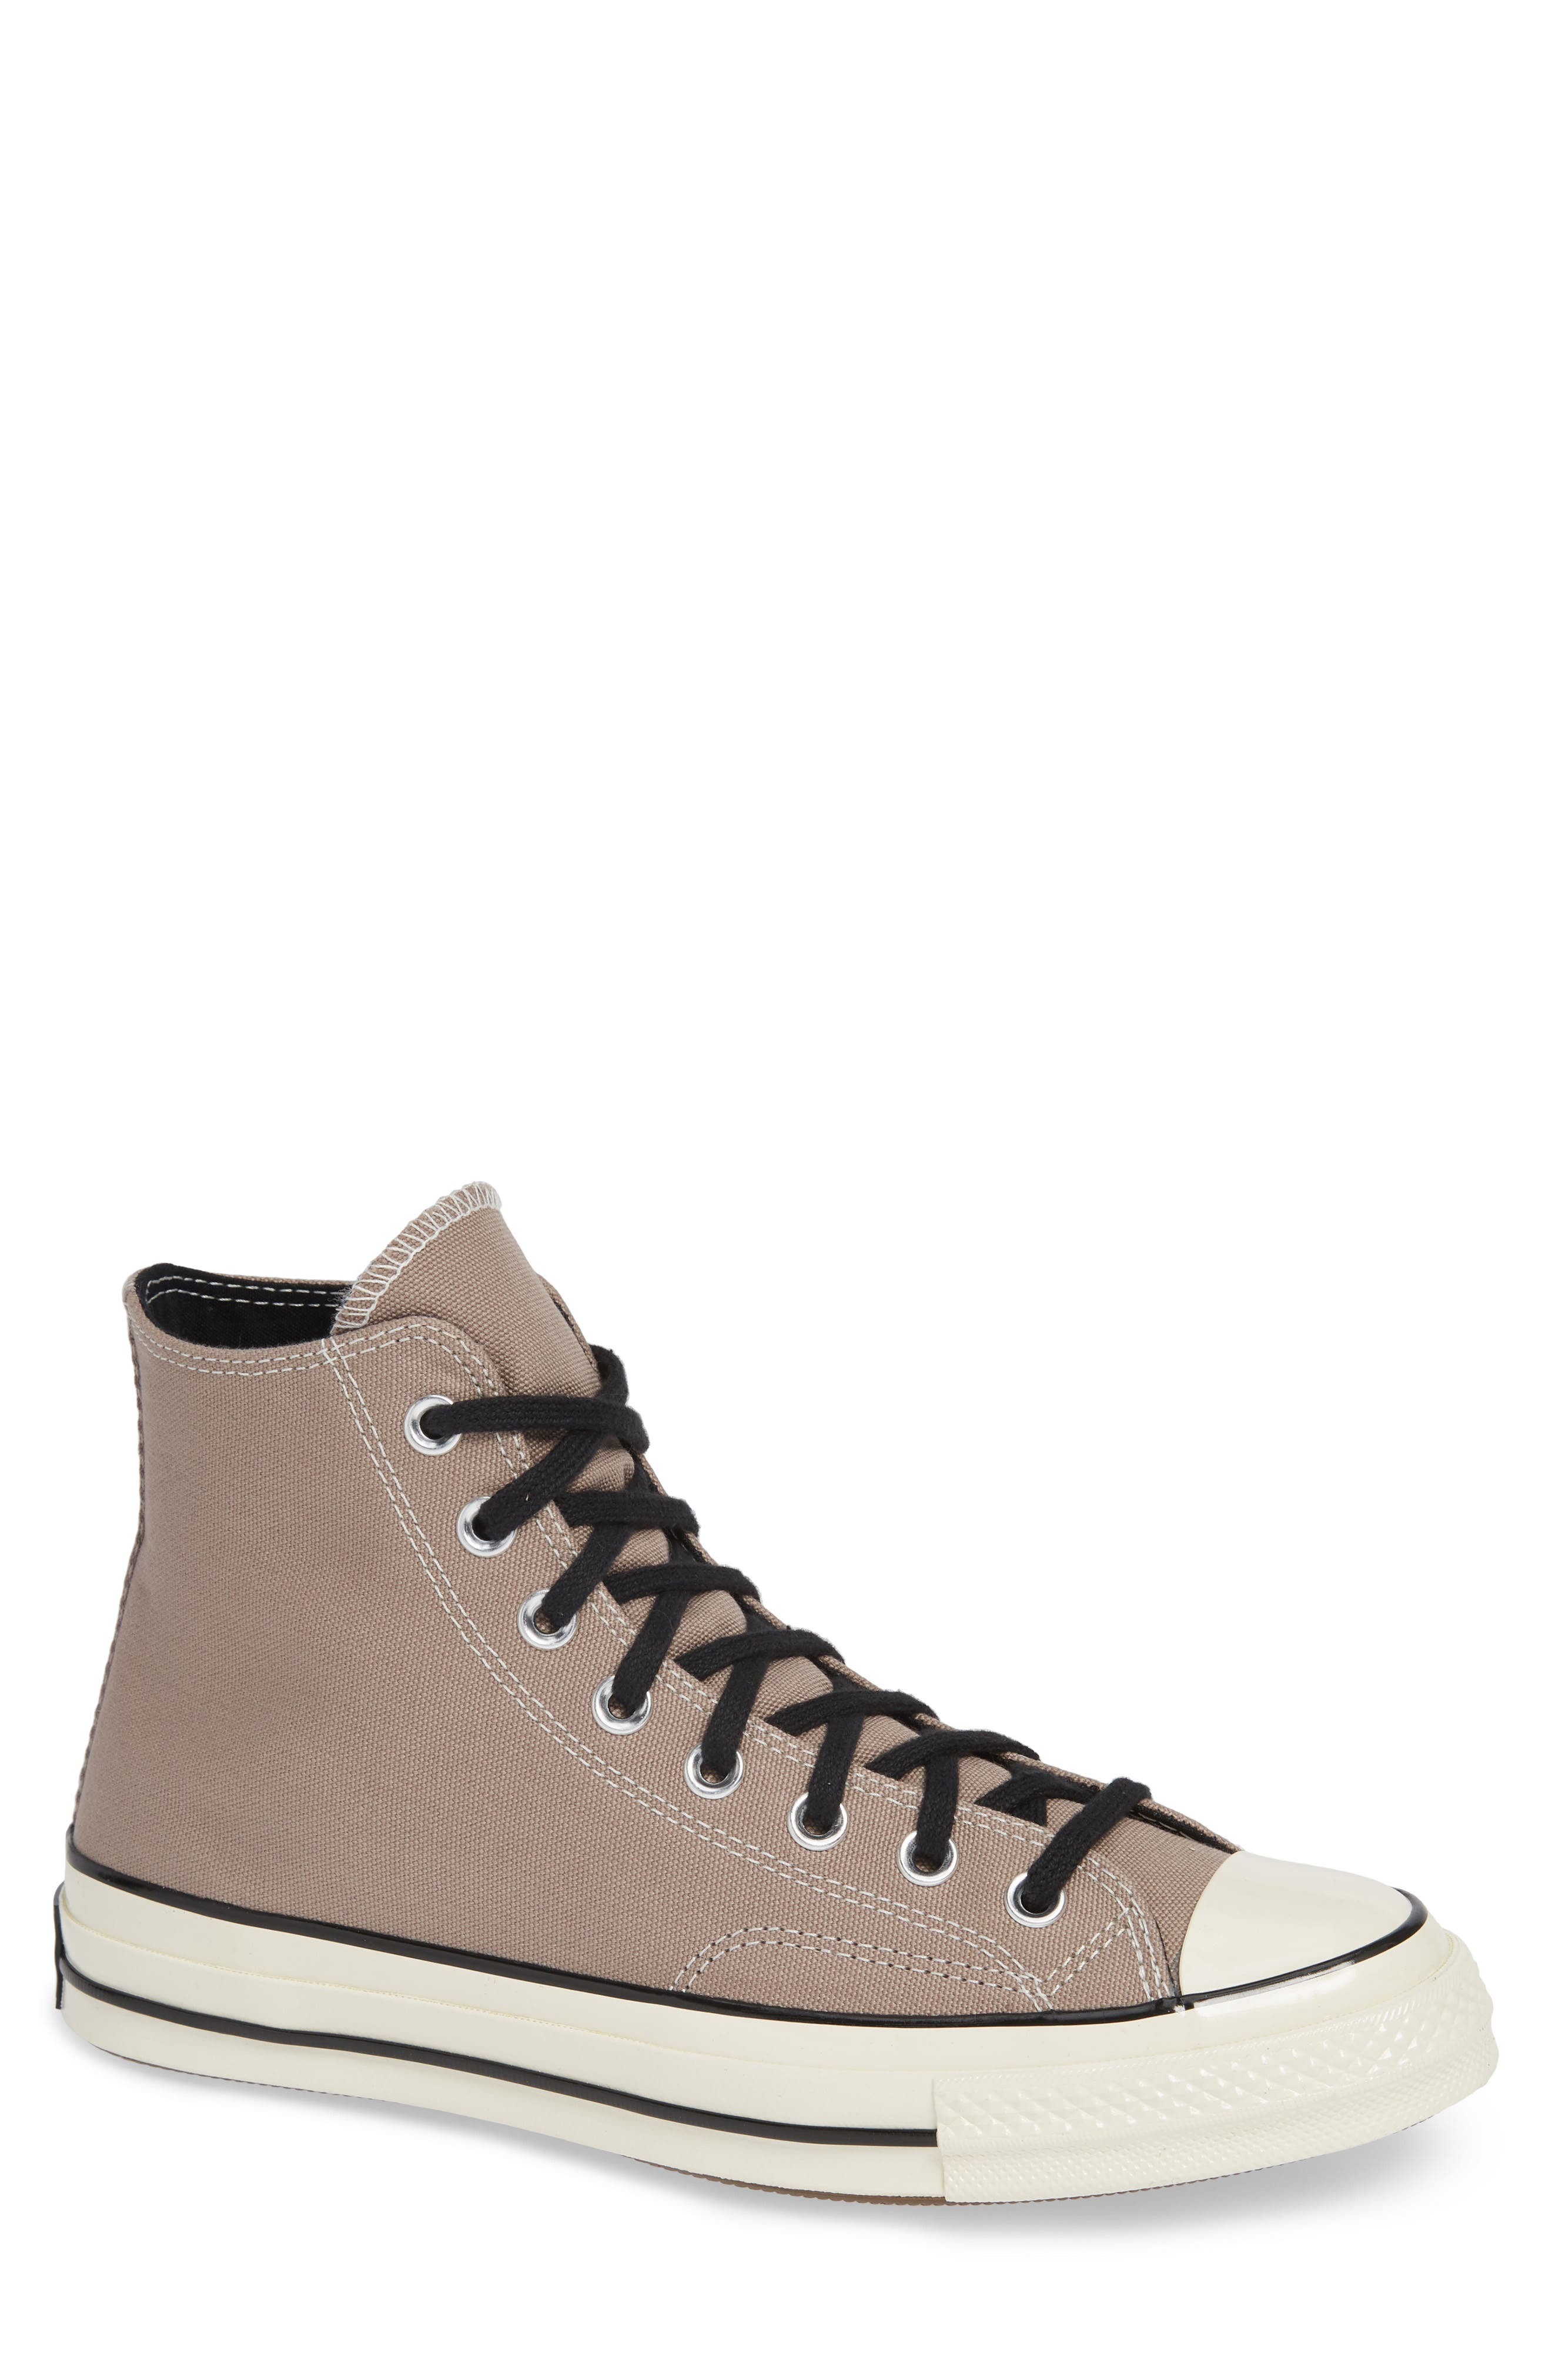 fbe1a2502b2 Converse Chuck Taylor All Star 70 High Top Sneaker- Grey